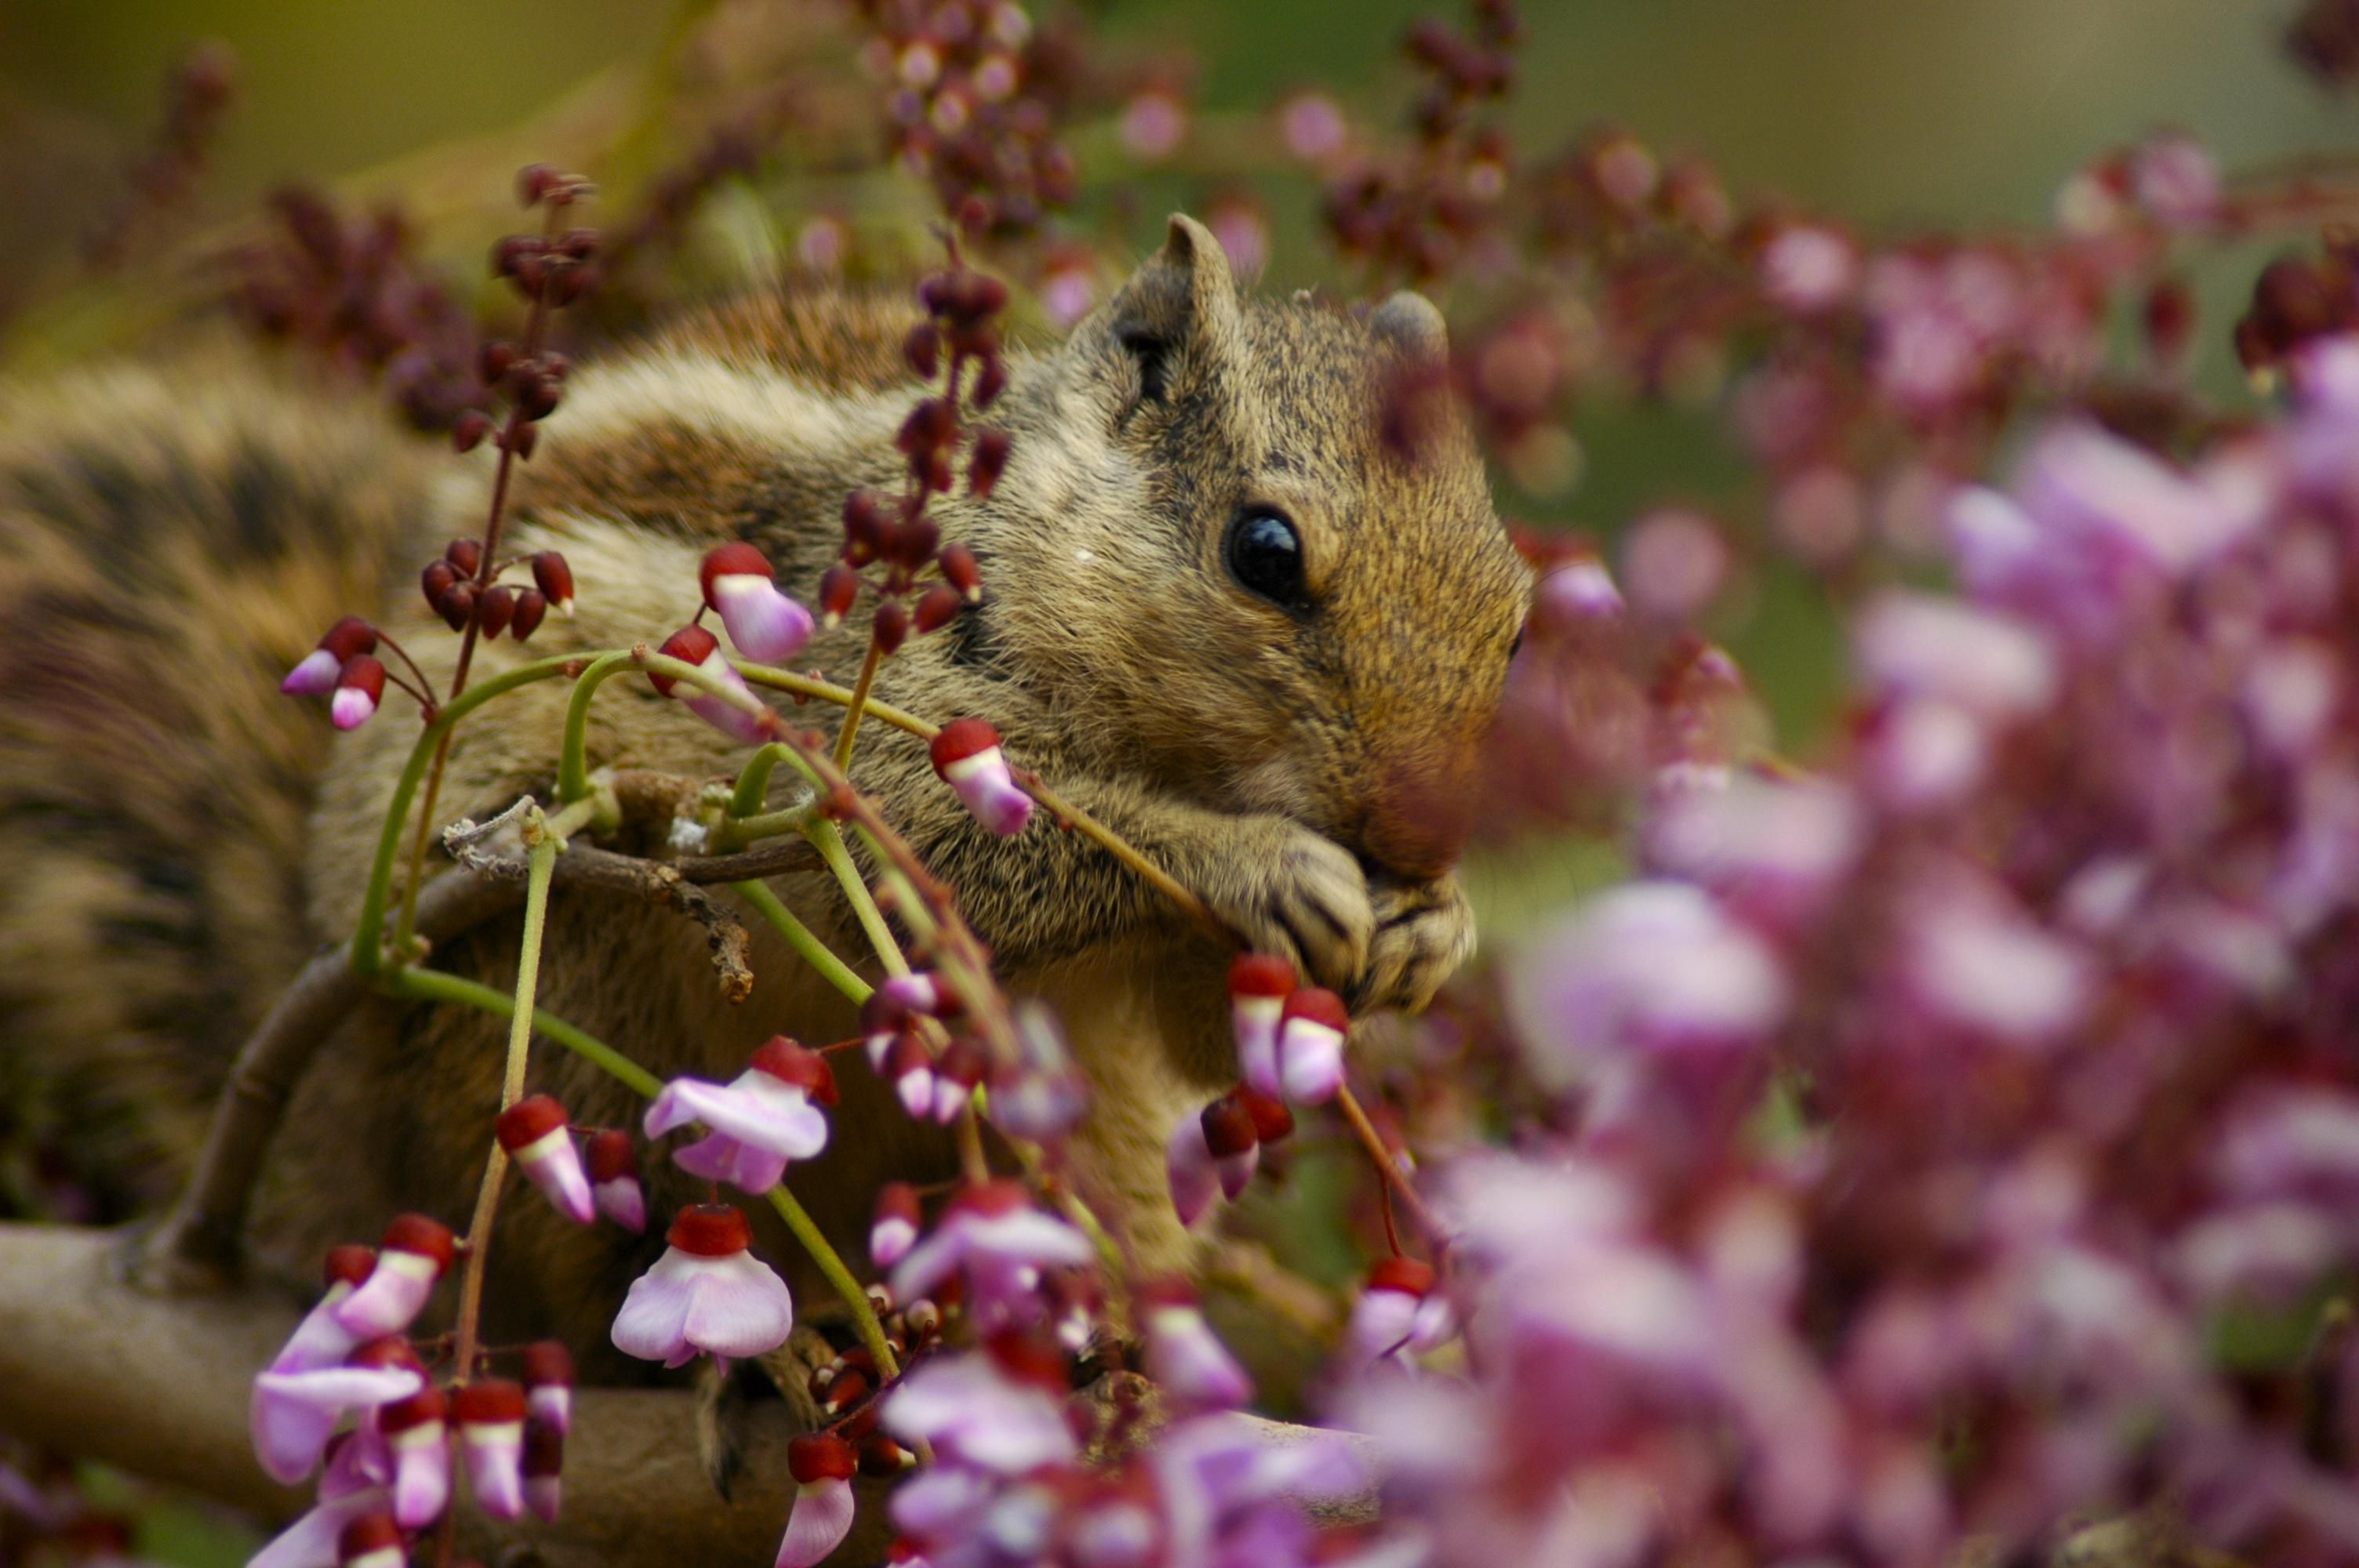 How To Protect Planted Bulbs From Squirrels And Chipmunks